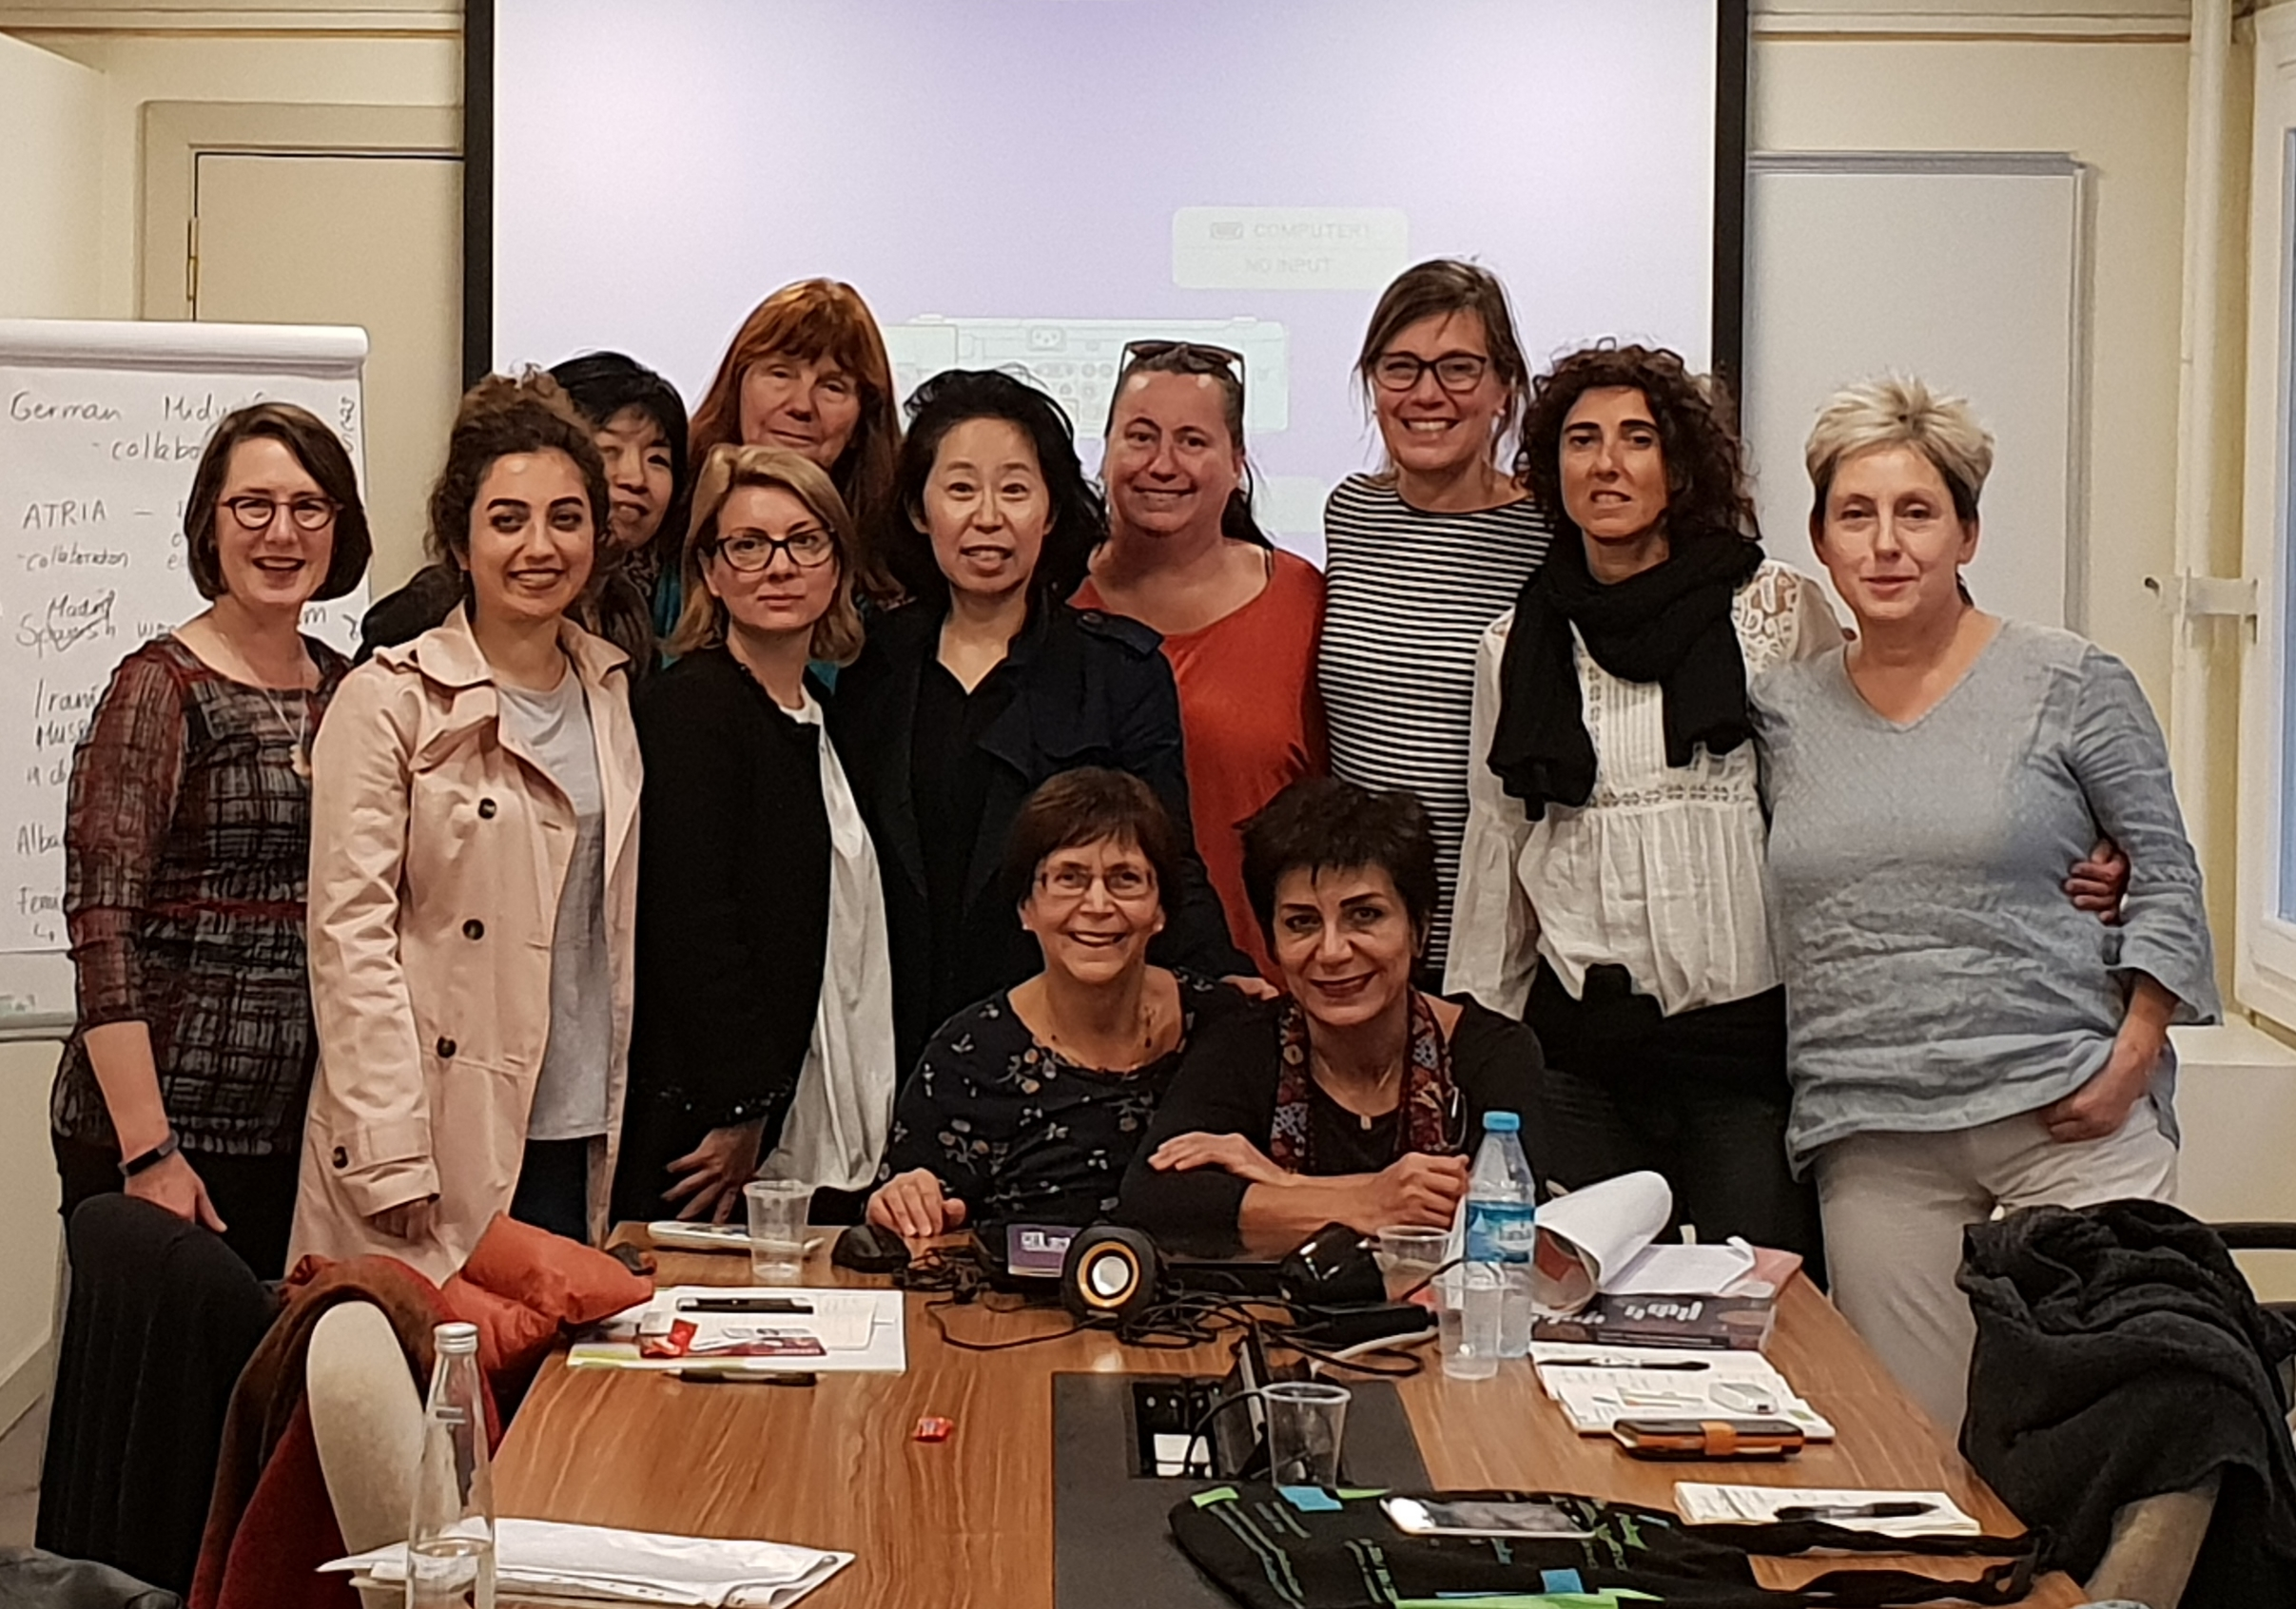 Participants at the 2018 meeting